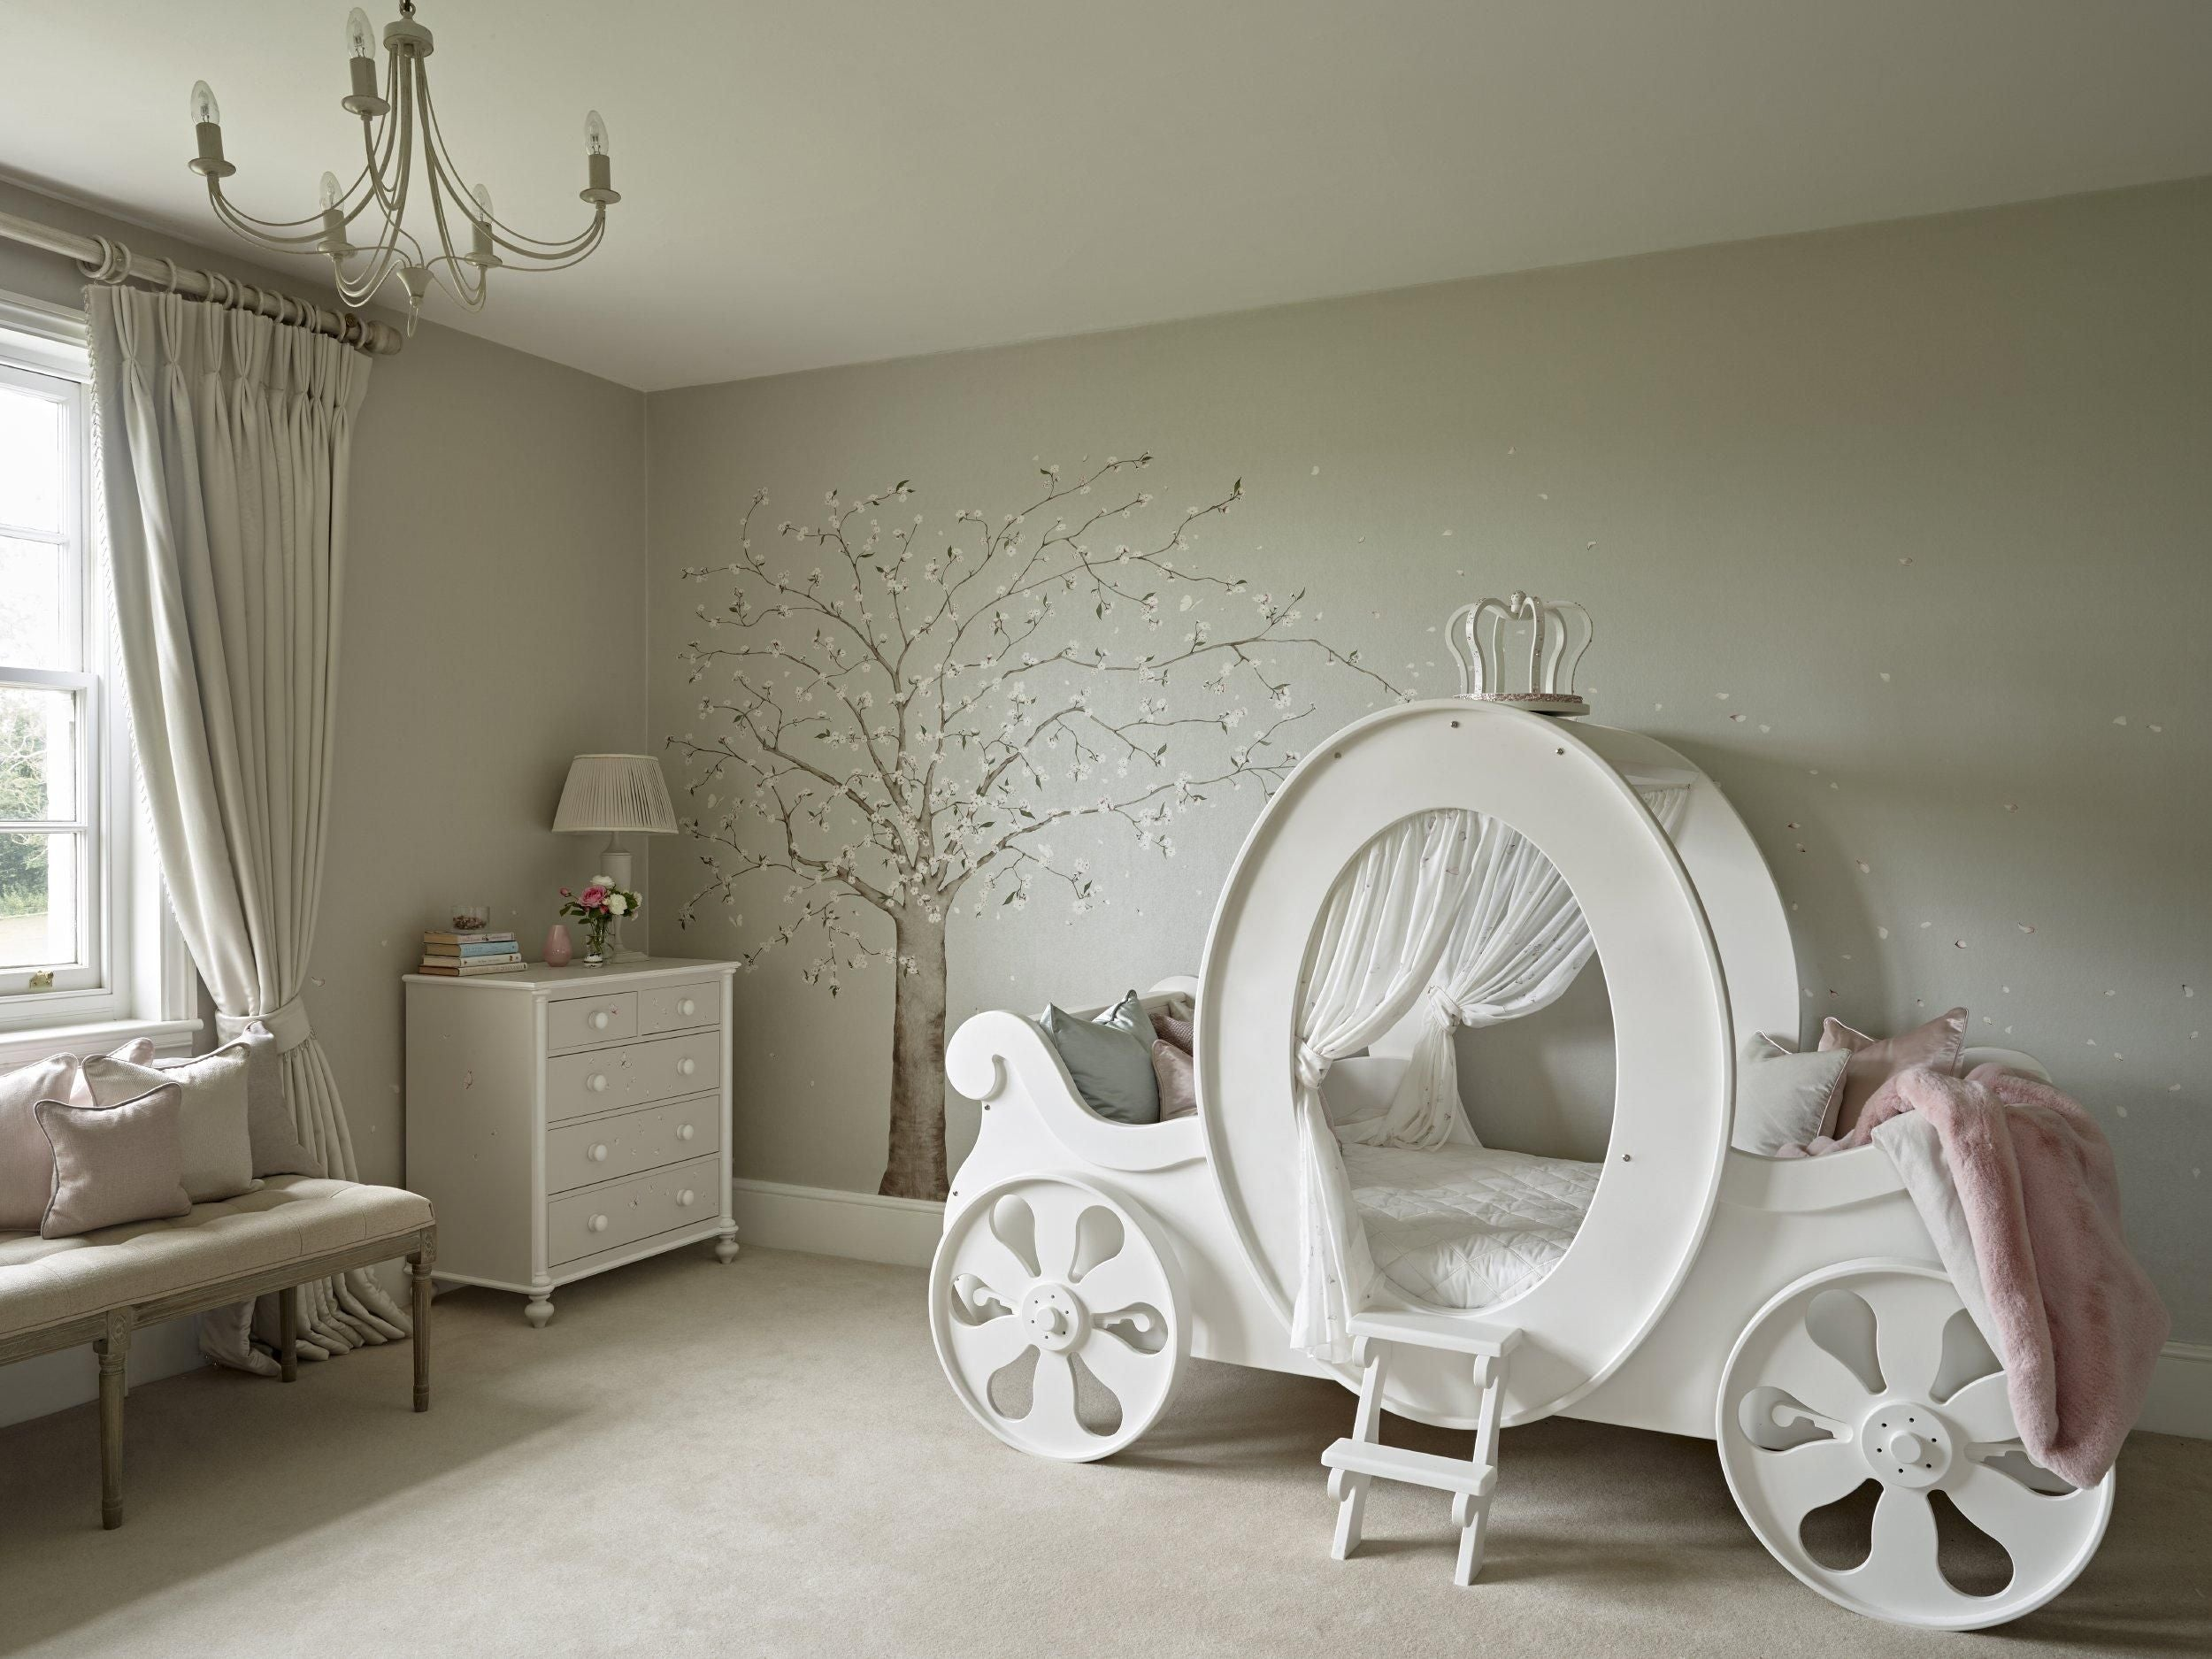 Princess Carriage Bed | Bespoke beds from Dragons of Walton Street